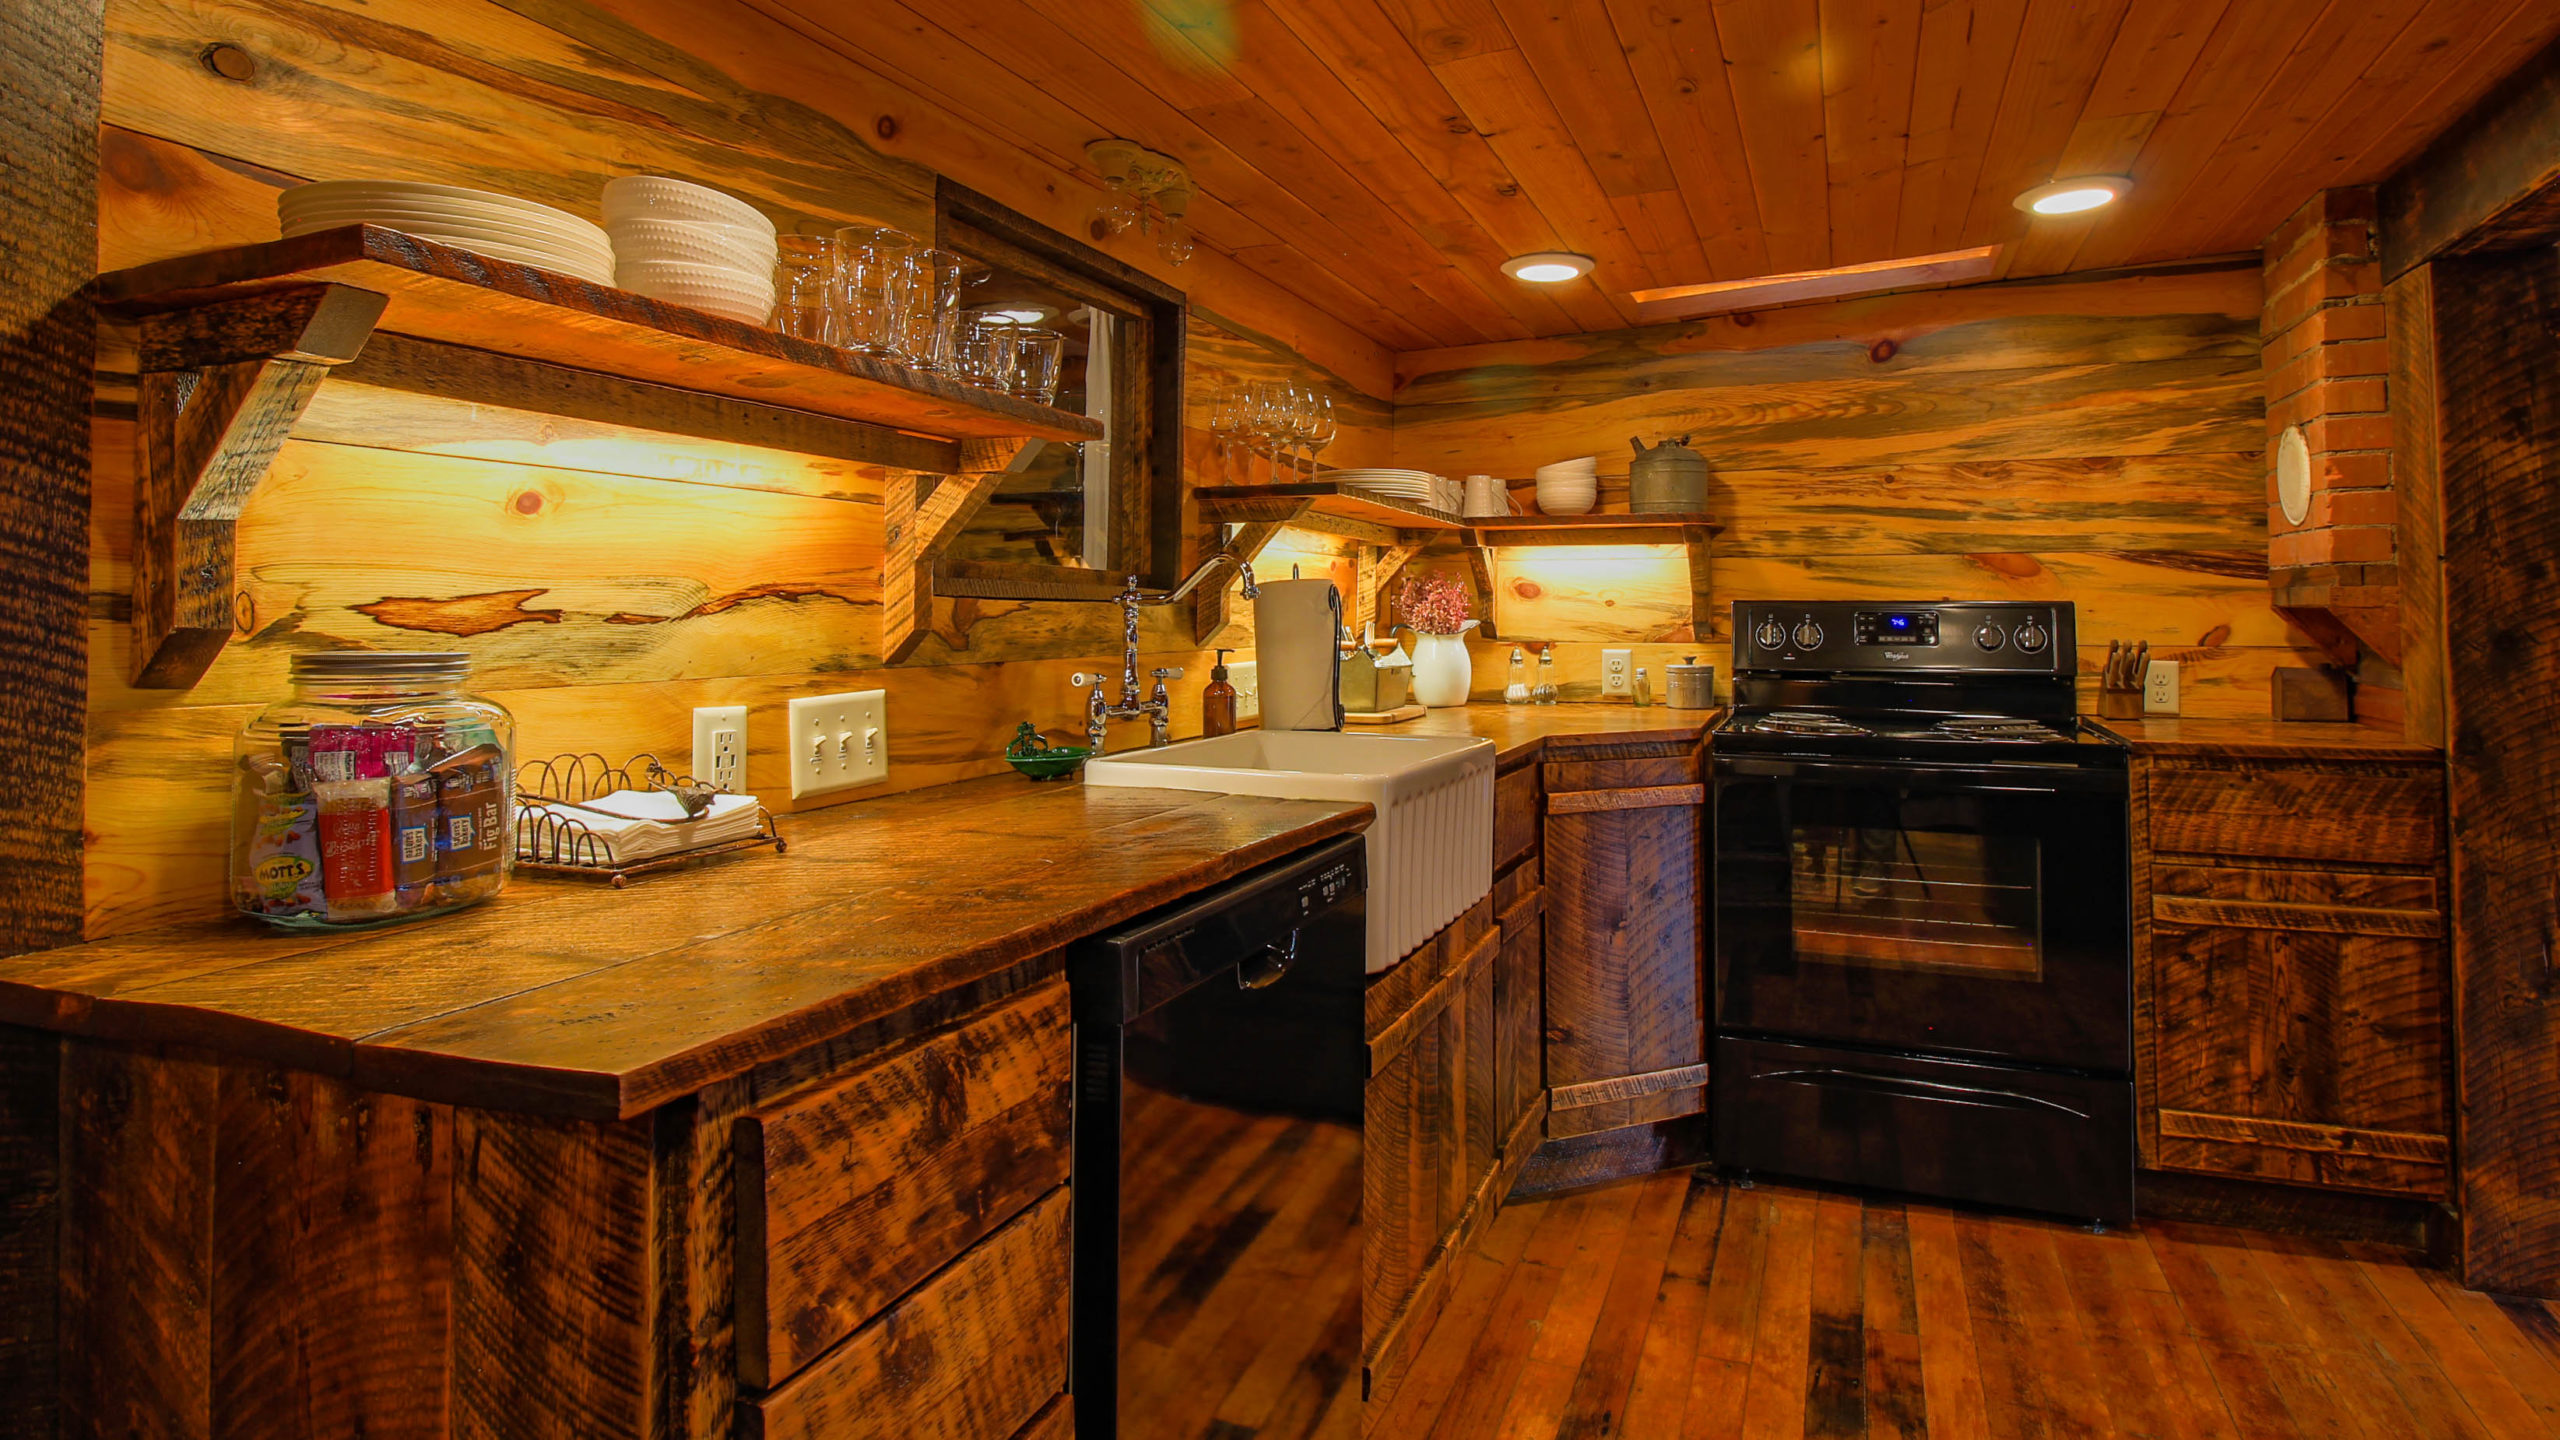 Storybook Exploration Cabin is an Extraordinary Mountain Town Vacation Home in Estes Park CO near Rocky Mountain National Park. This is an image of the kitchen.